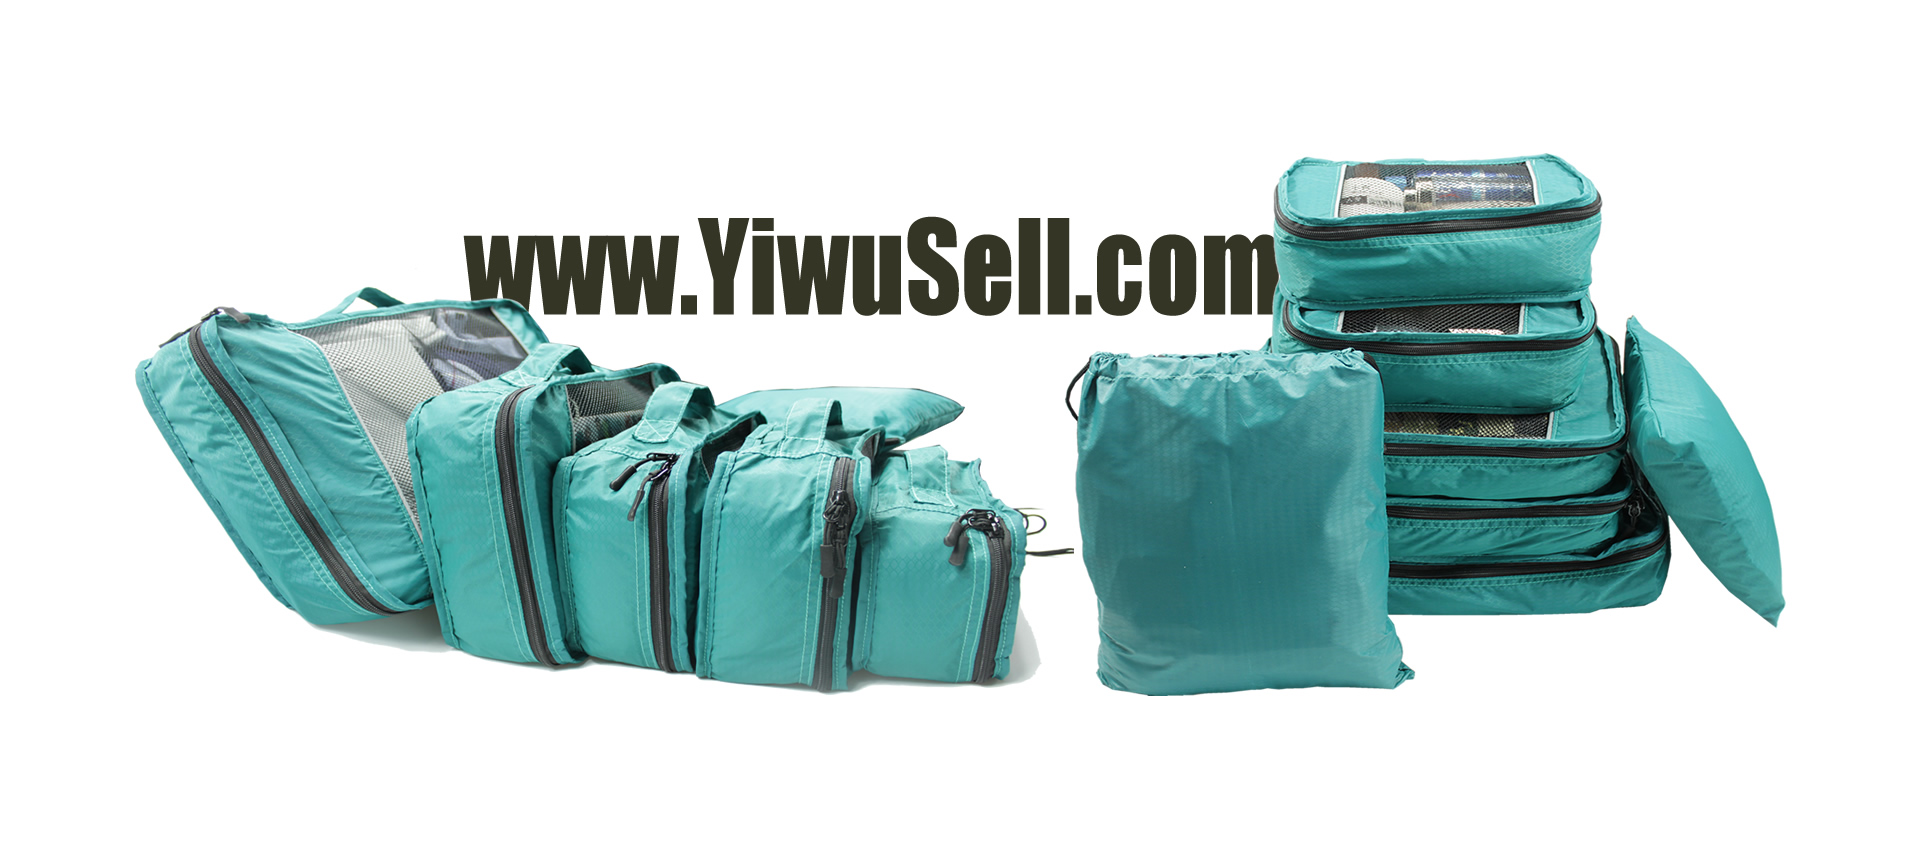 Why this travel bag named packing cubes not storage bags?